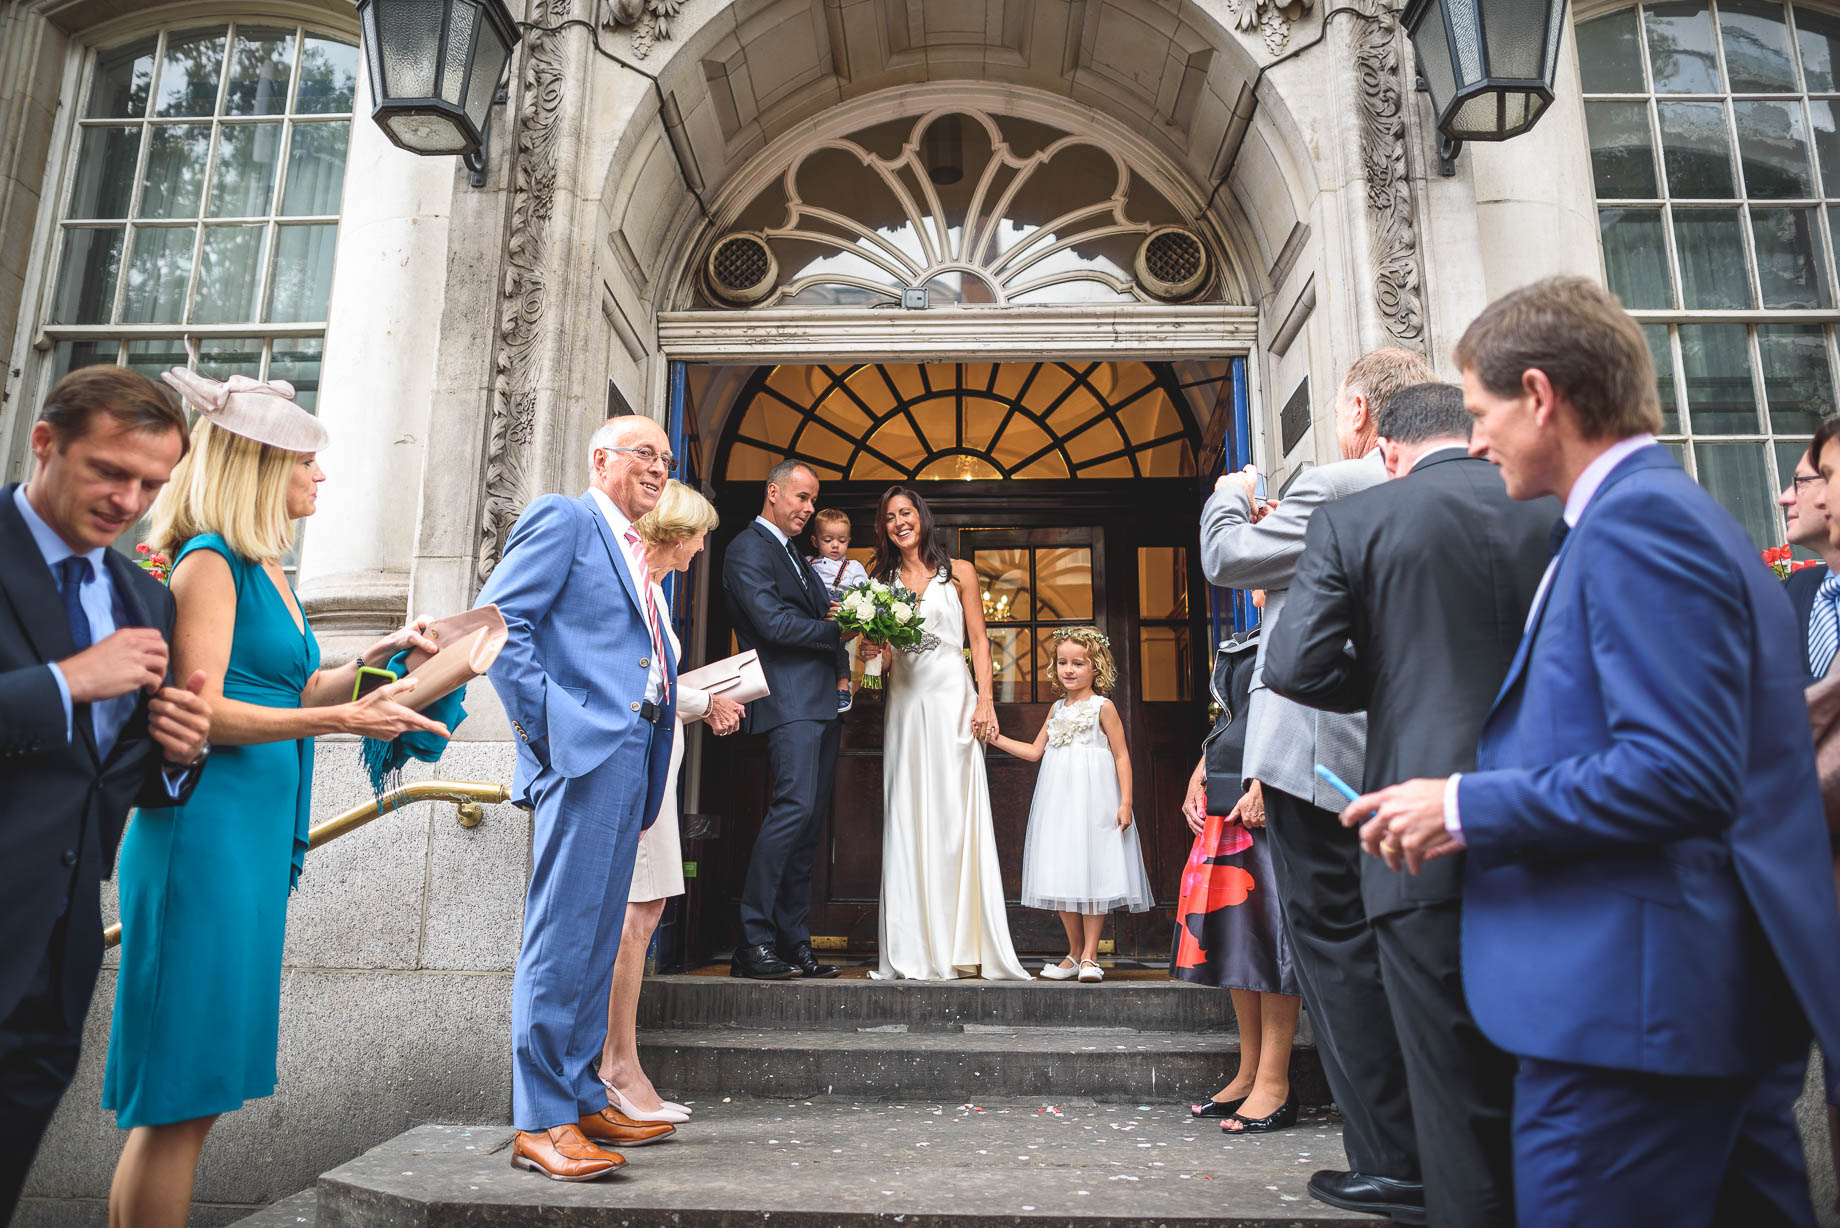 Chelsea and Mayfair wedding photography - Guy Collier - Vicki and Damien (66 of 126)